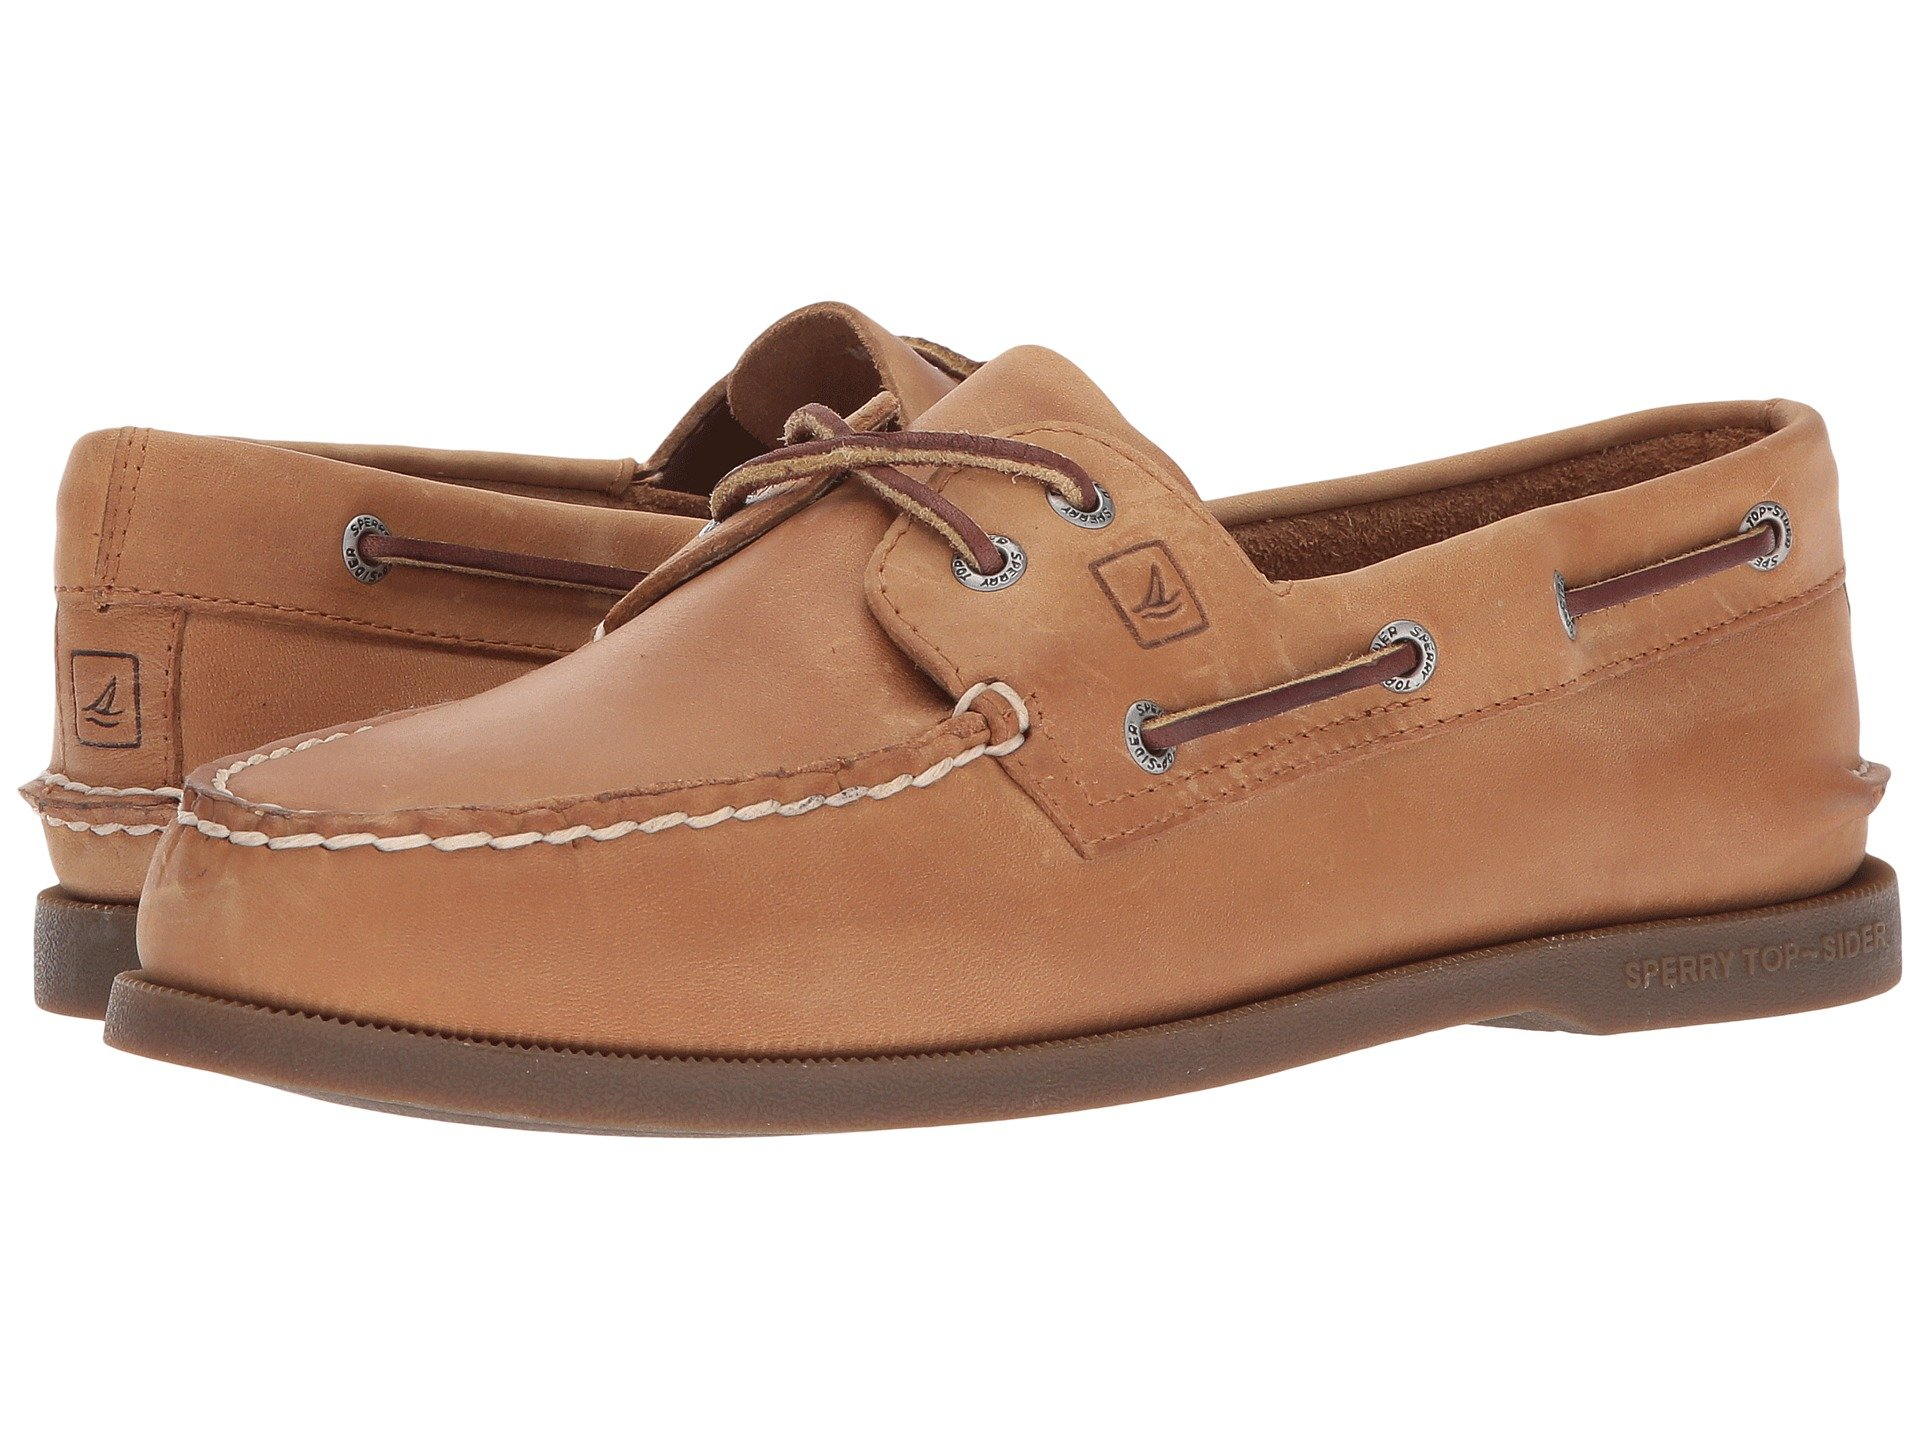 Sperry Topsider Leather Boat Shoe